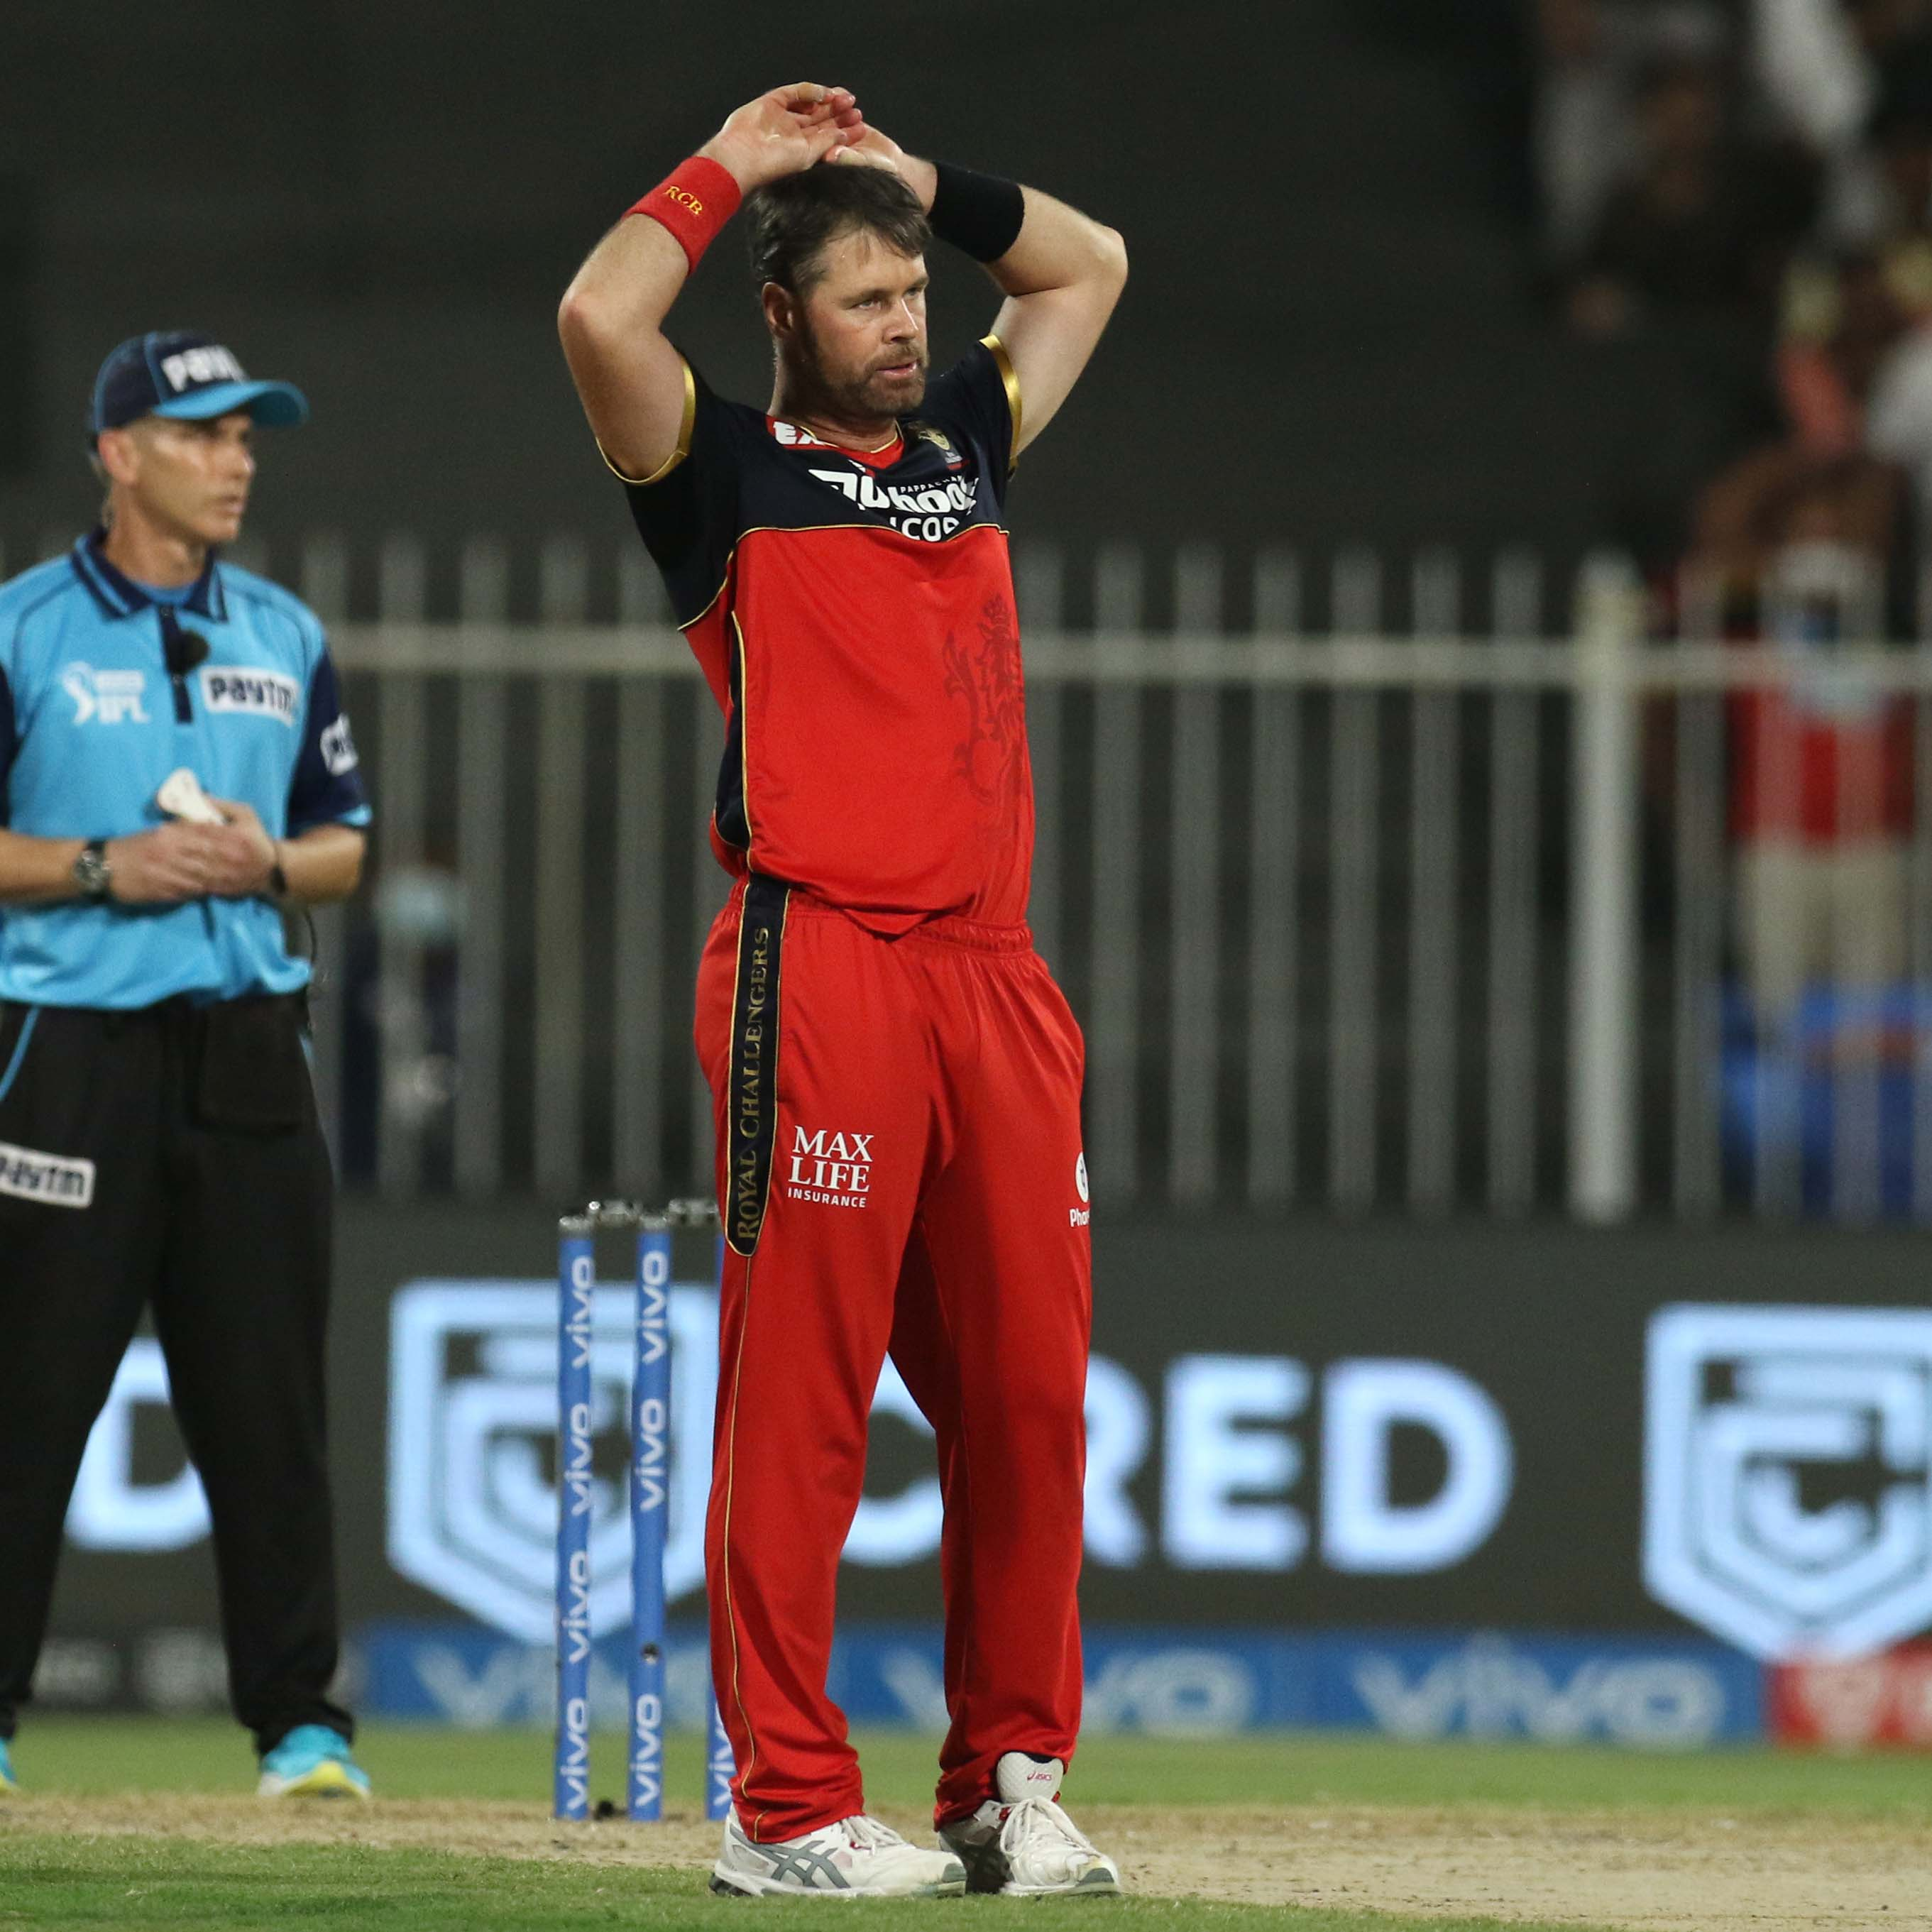 Christian conceded 29 runs from his 10 balls // BCCI-Sportzpics